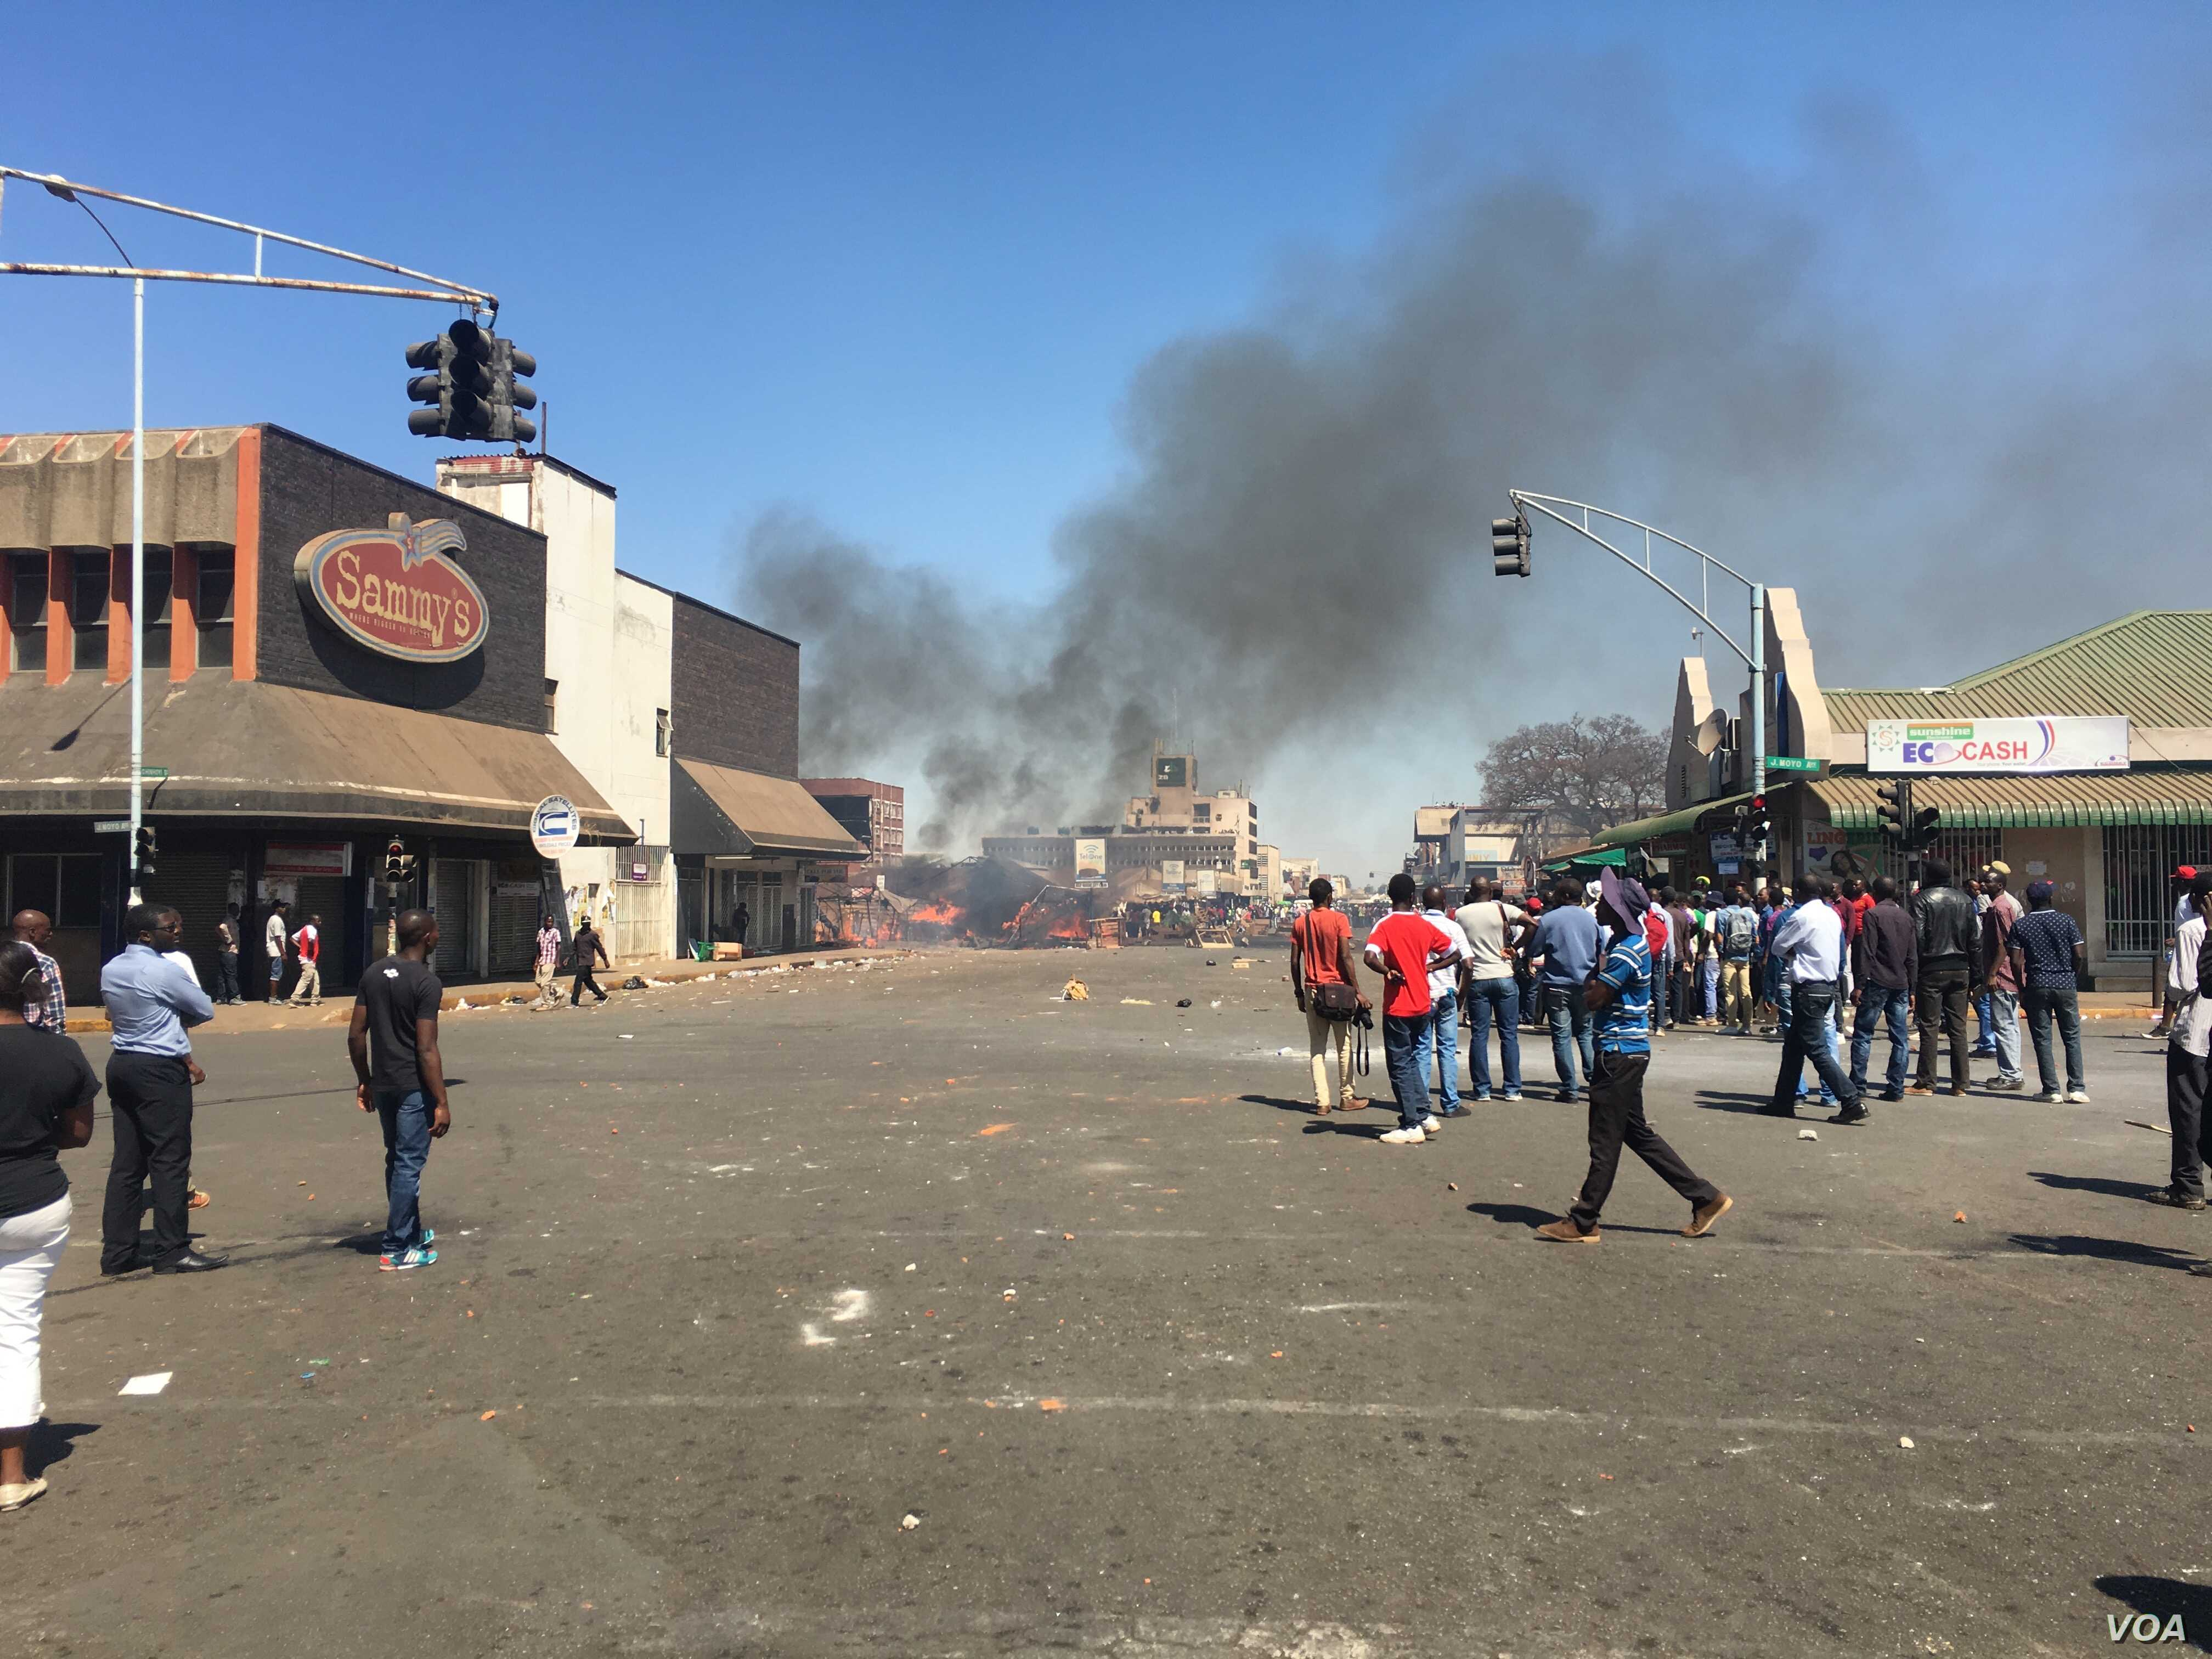 Protests are set to return to streets of Harare over proposed bondnotes following the expiration of a police month-long ban of demonstrations, Harare, Zimbabwe, Aug. 26, 2016. (S. Mhofu). Since July, Zimbabweans have been protesting against human rig...